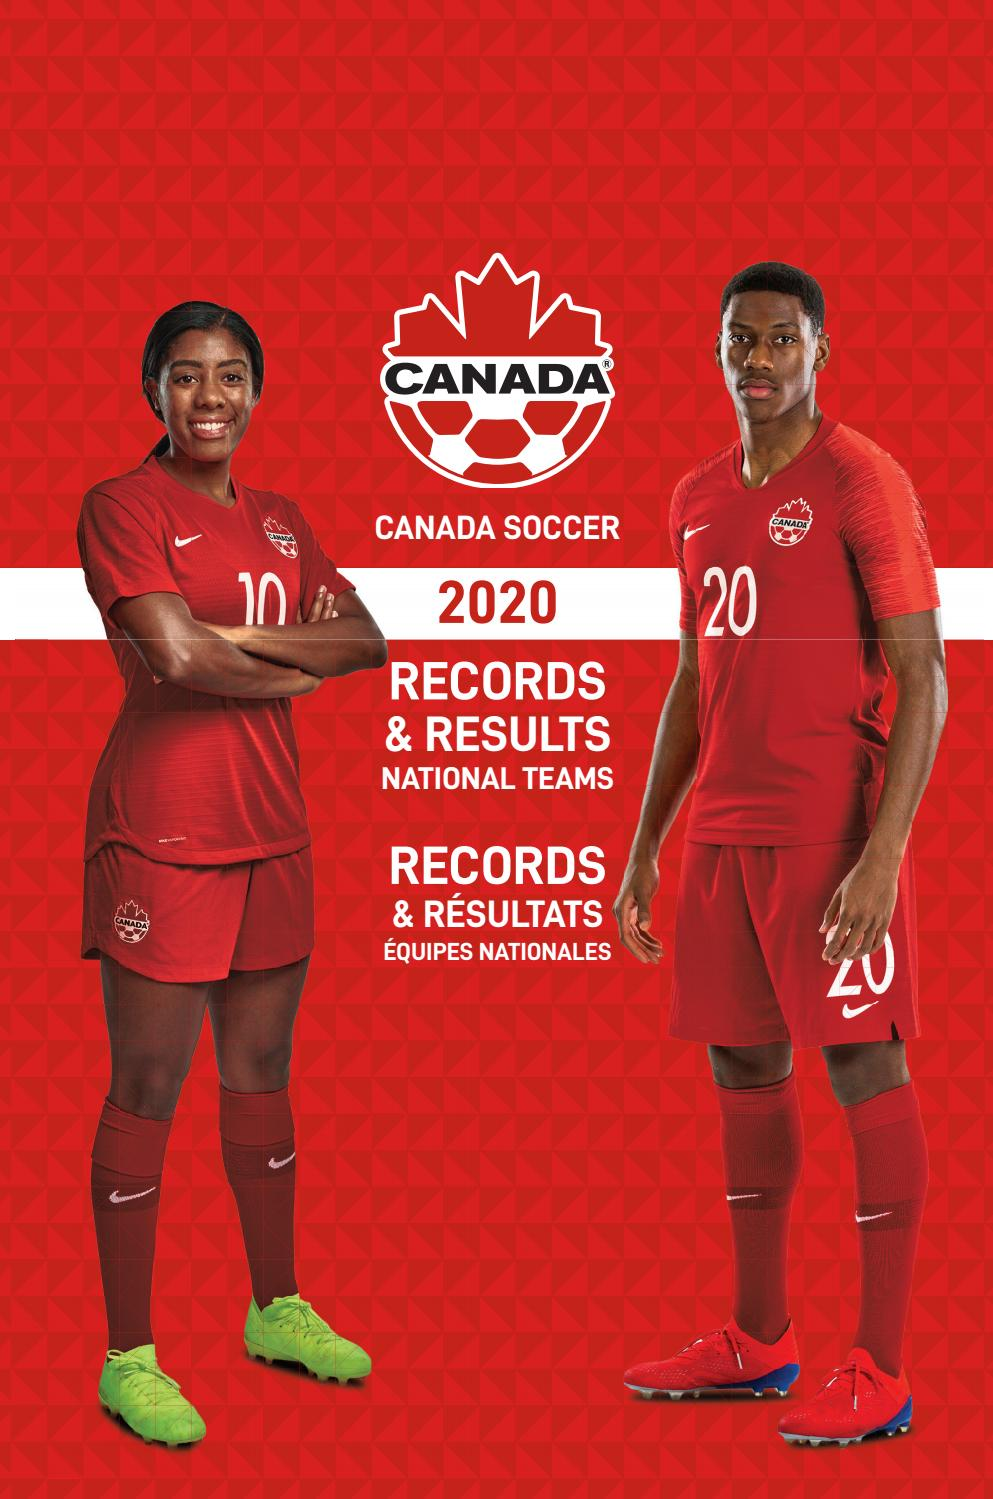 2020 Canada Soccer Records Results National Teams By Canada Soccer Issuu